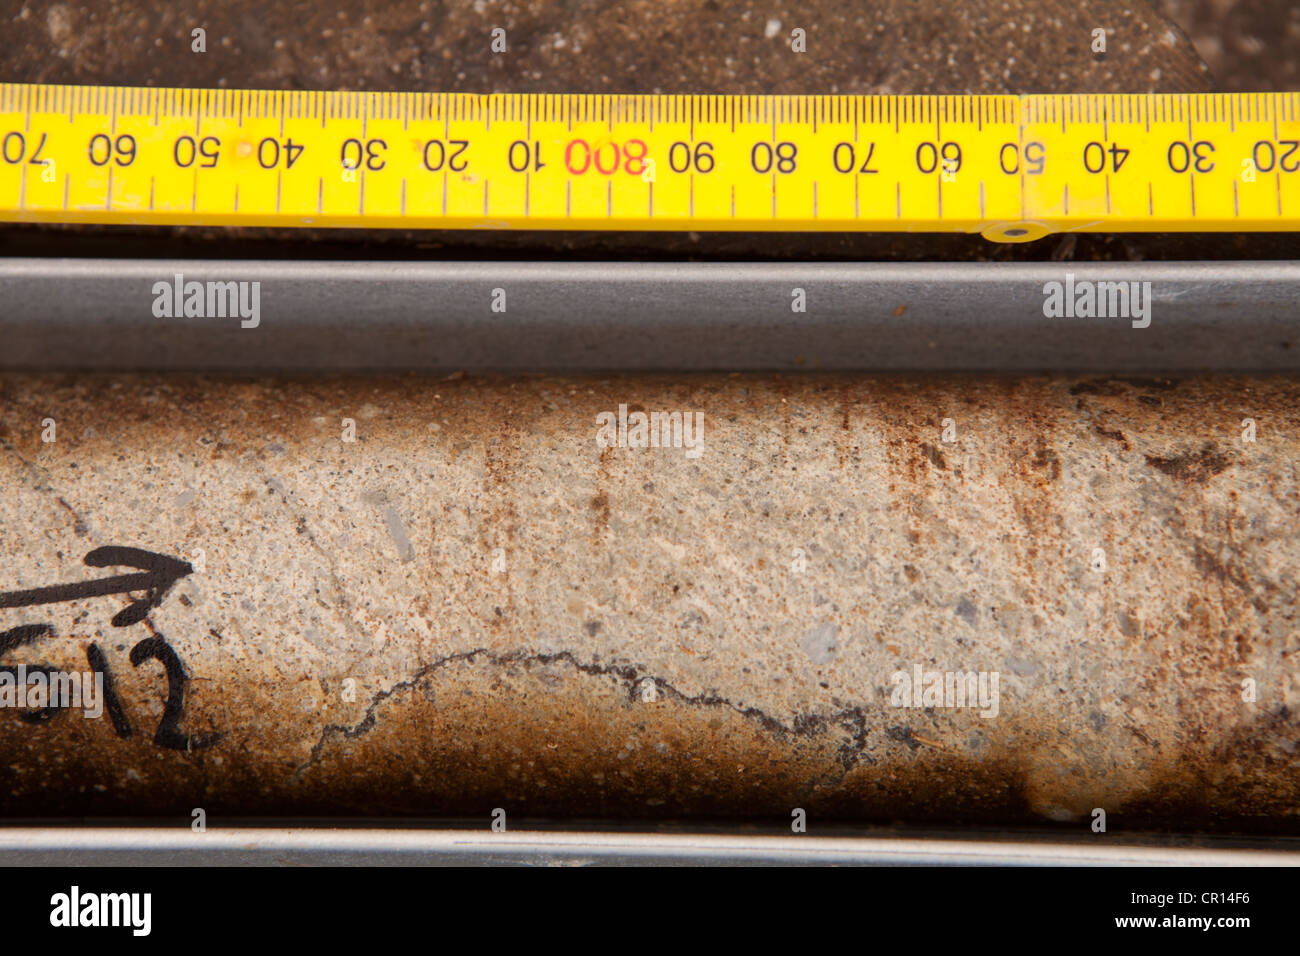 Detail of a rock drill core sample in mining exploration - Stock Image